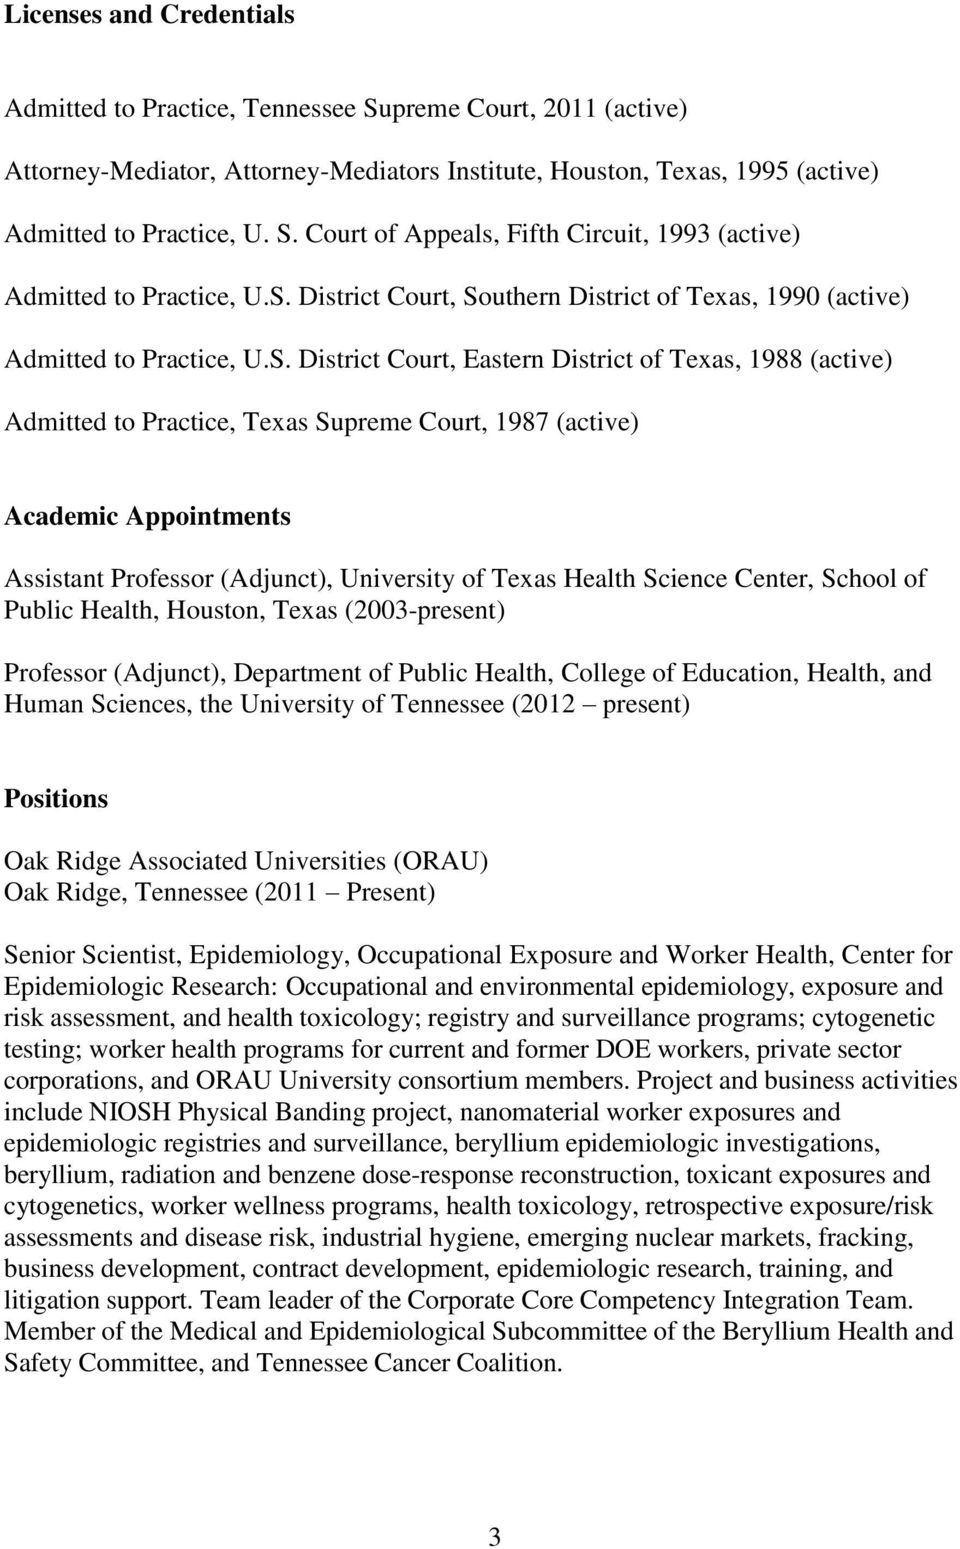 (active) Academic Appointments Assistant Professor (Adjunct), University of Texas Health Science Center, School of Public Health, Houston, Texas (2003-present) Professor (Adjunct), Department of